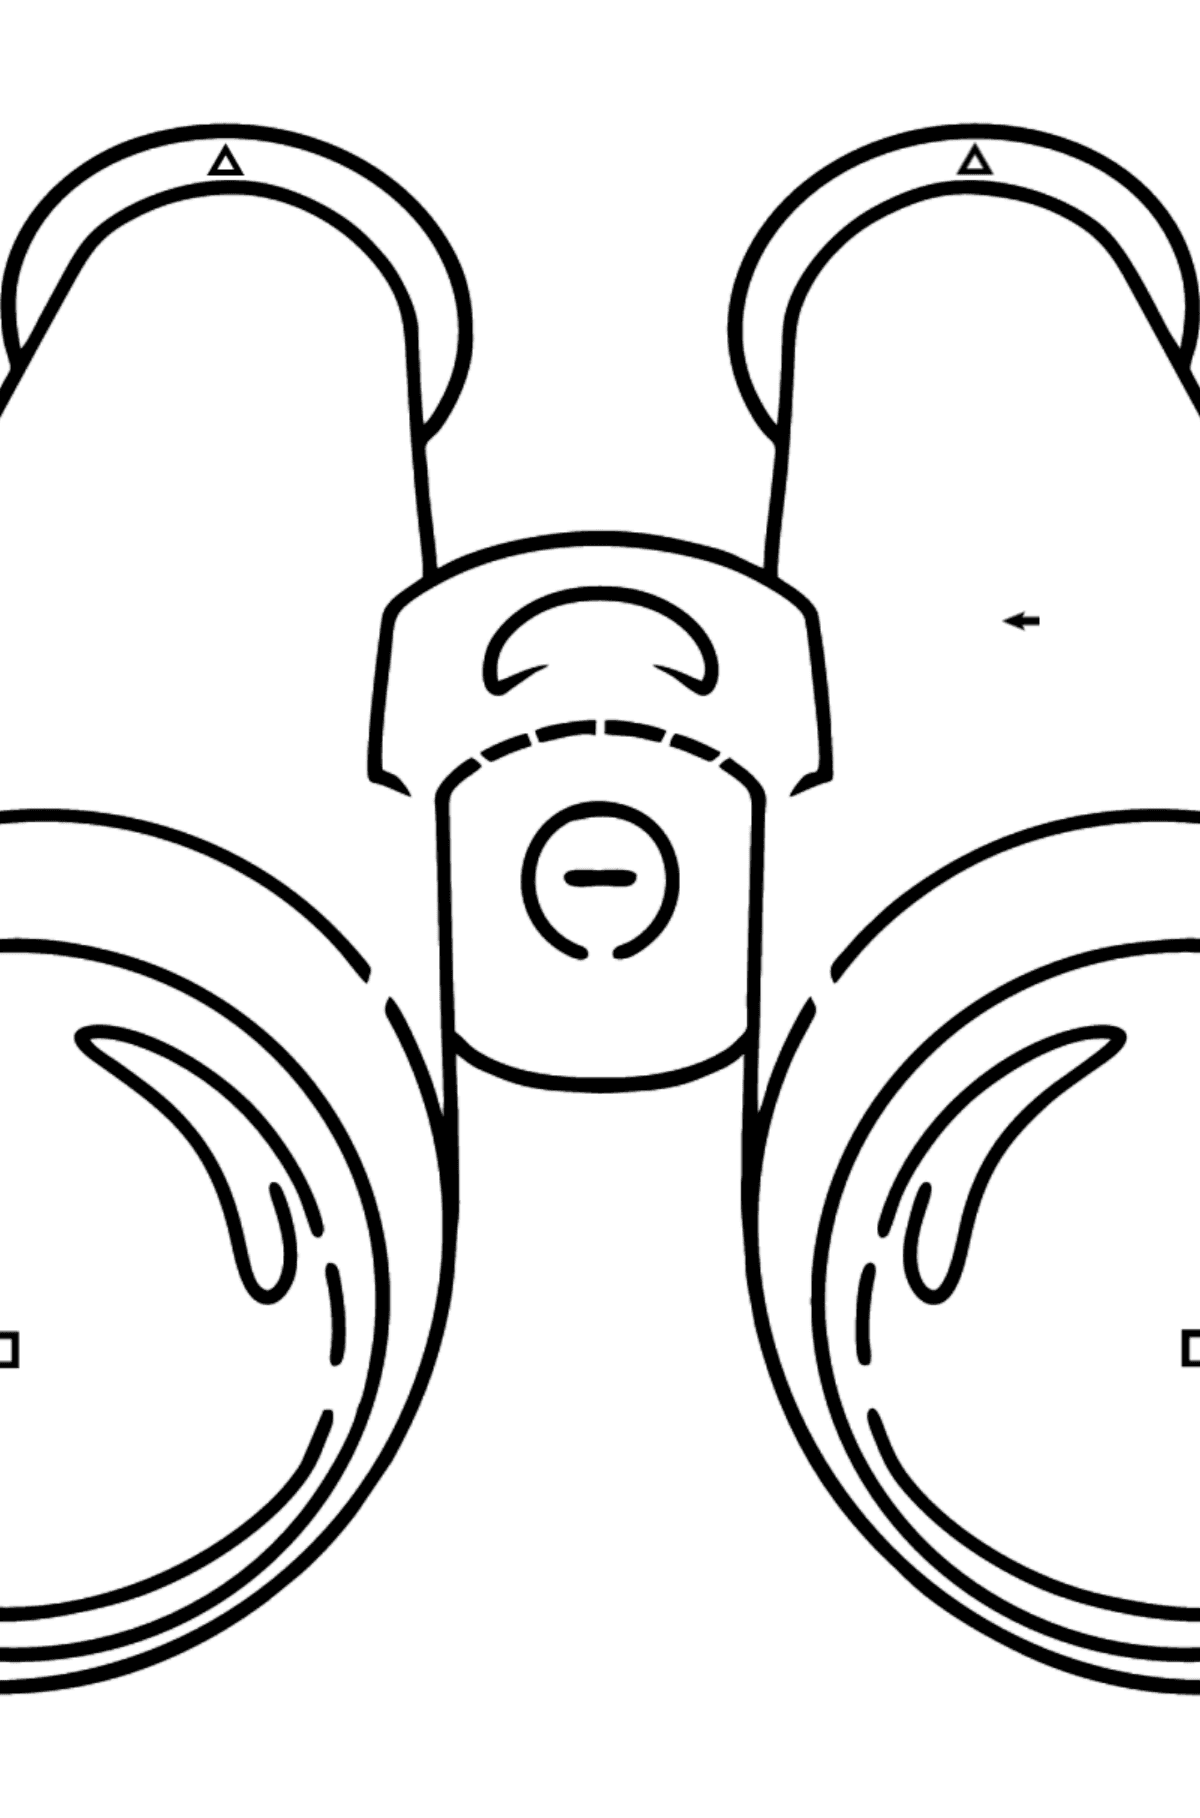 Binoculars coloring page - Coloring by Symbols for Kids